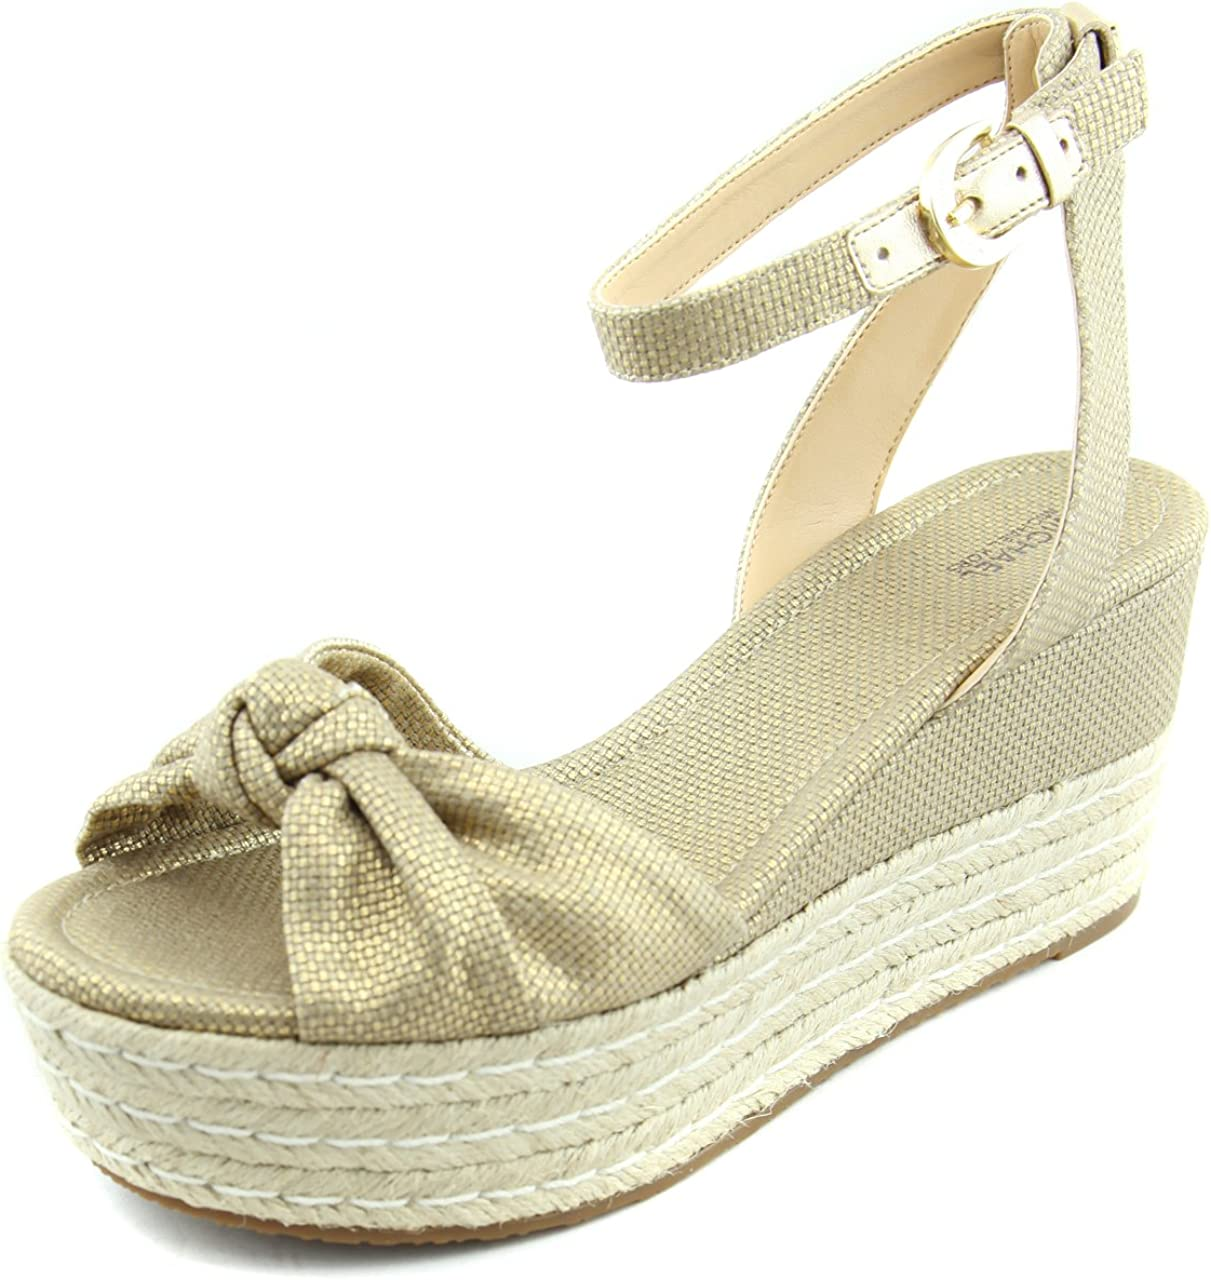 Save money Michael Kors Maxwell Mid Leather Wedge Sandals Canvas Challenge the lowest price of Japan ☆